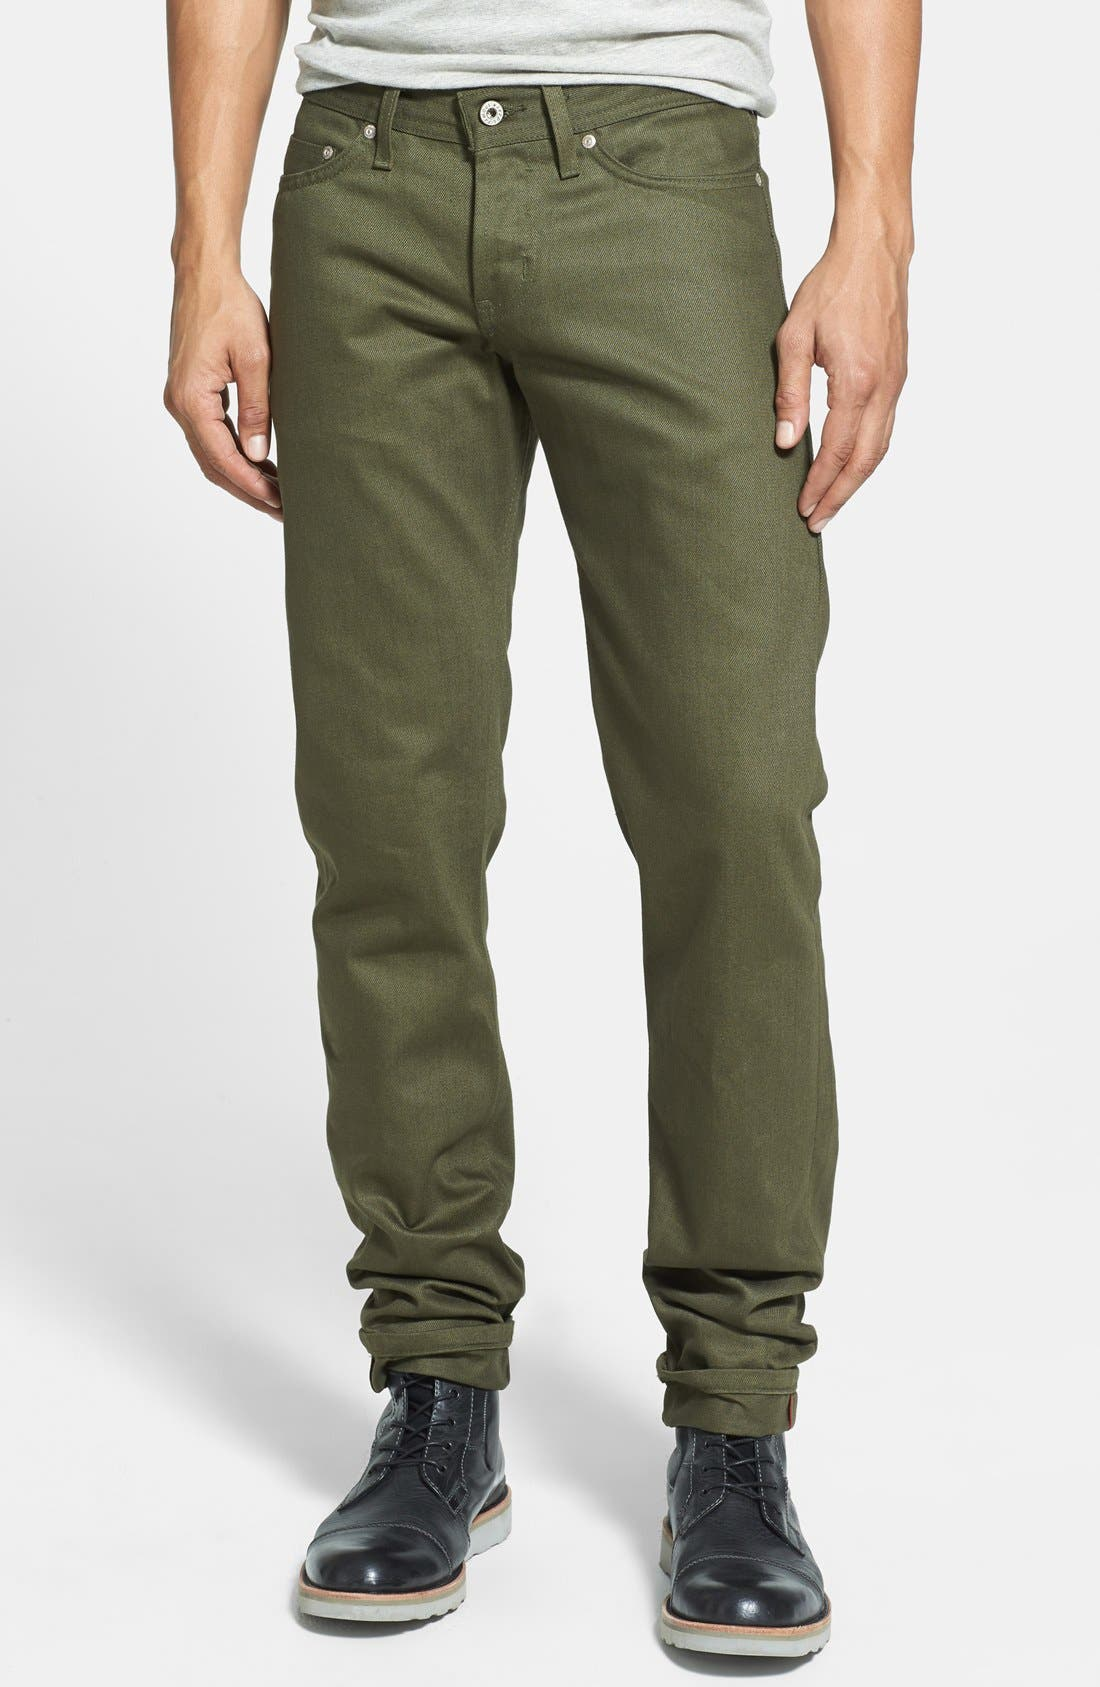 'Weird Guy' Slim Fit Jeans,                             Main thumbnail 1, color,                             Khaki Green Selvedge Chino